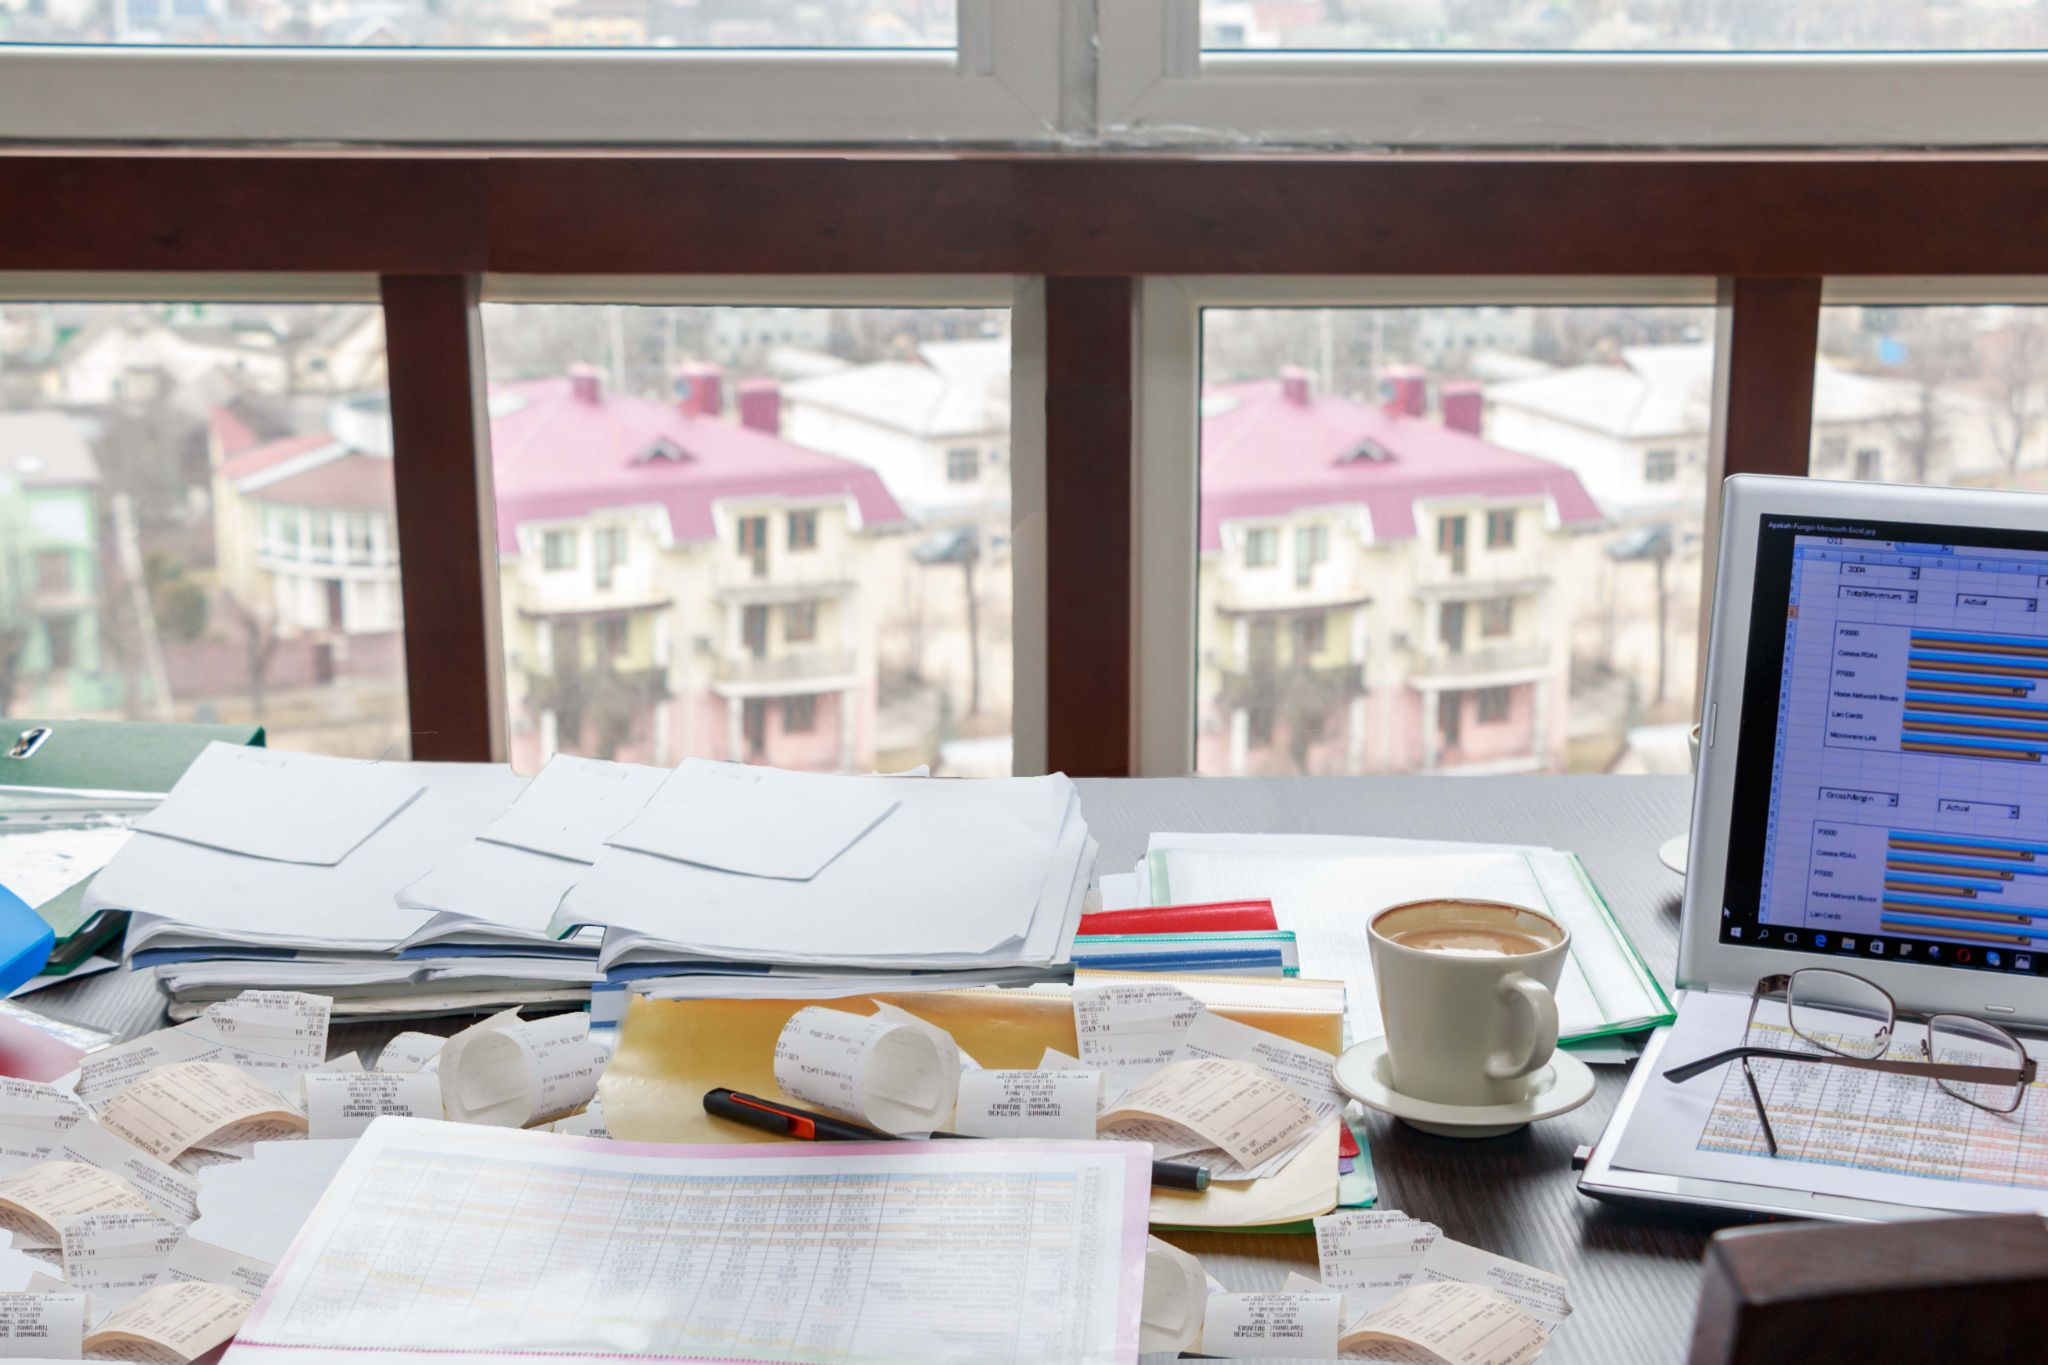 Messy desk covered in papers and receipts.